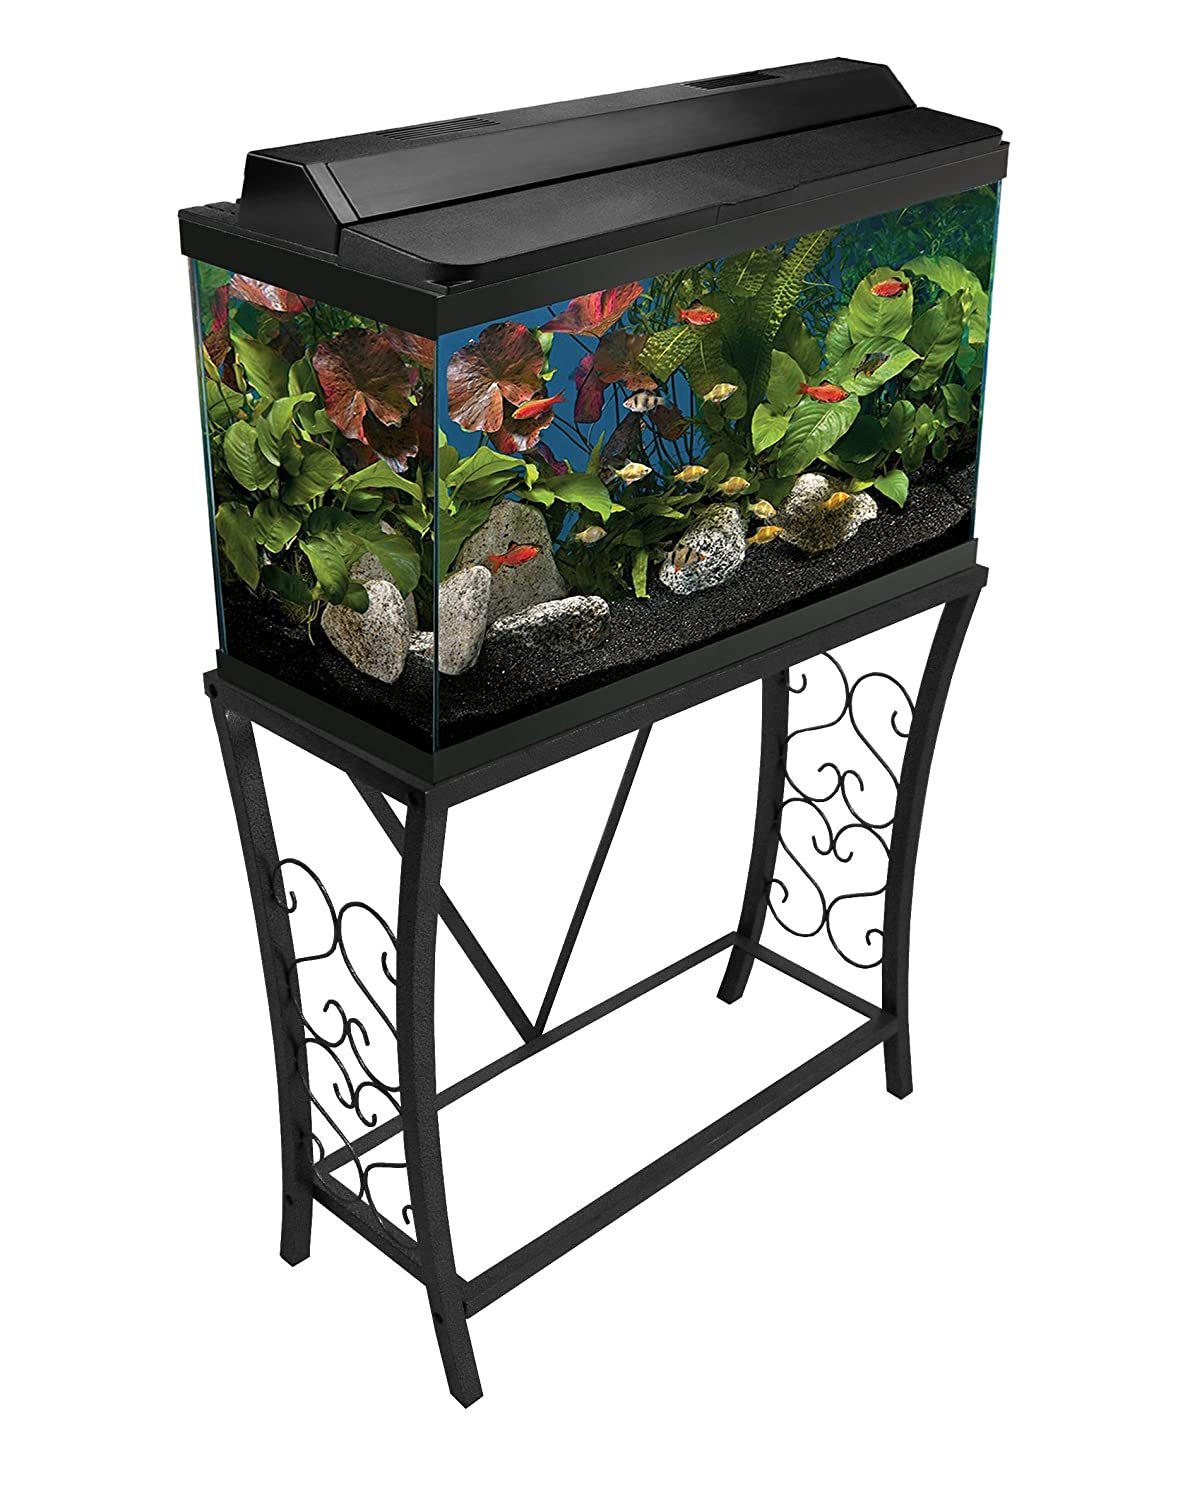 Aquatic Fundamentals 29-Gallon Aquarium Stand